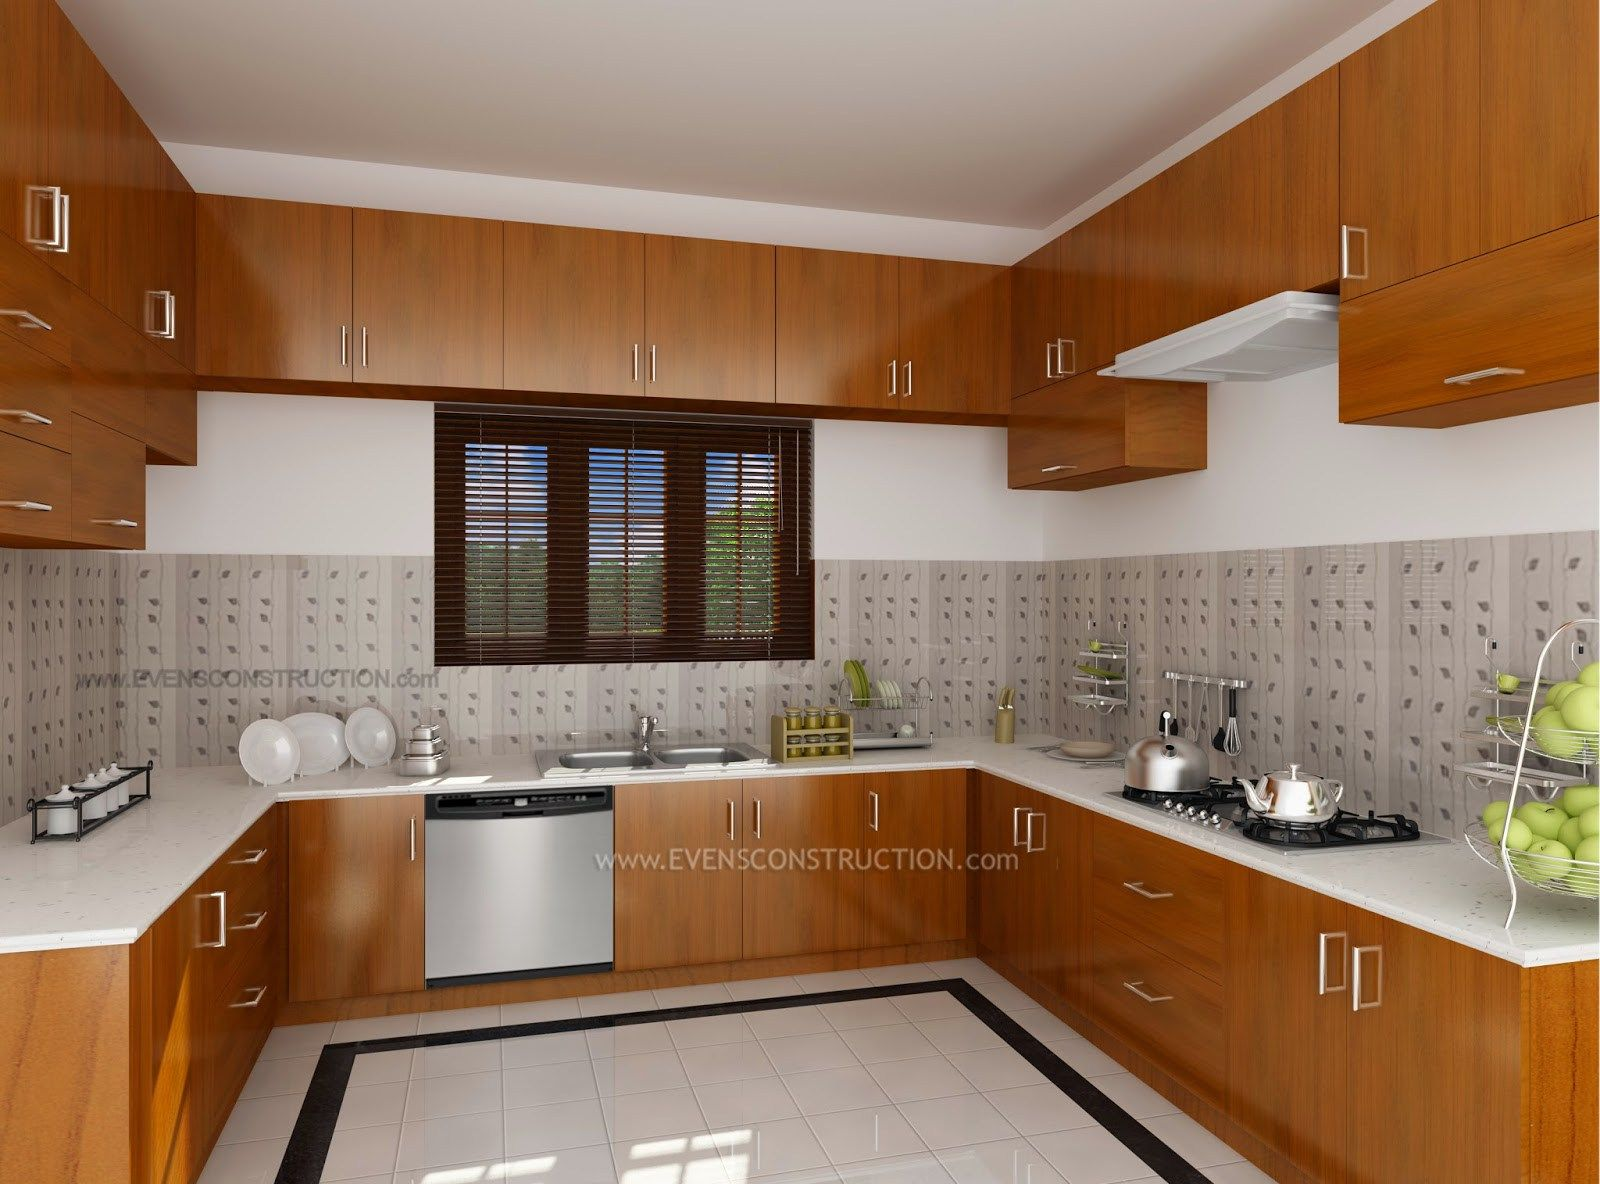 kerala home kitchen designs design interior kitchen home kerala modern house kitchen 4930